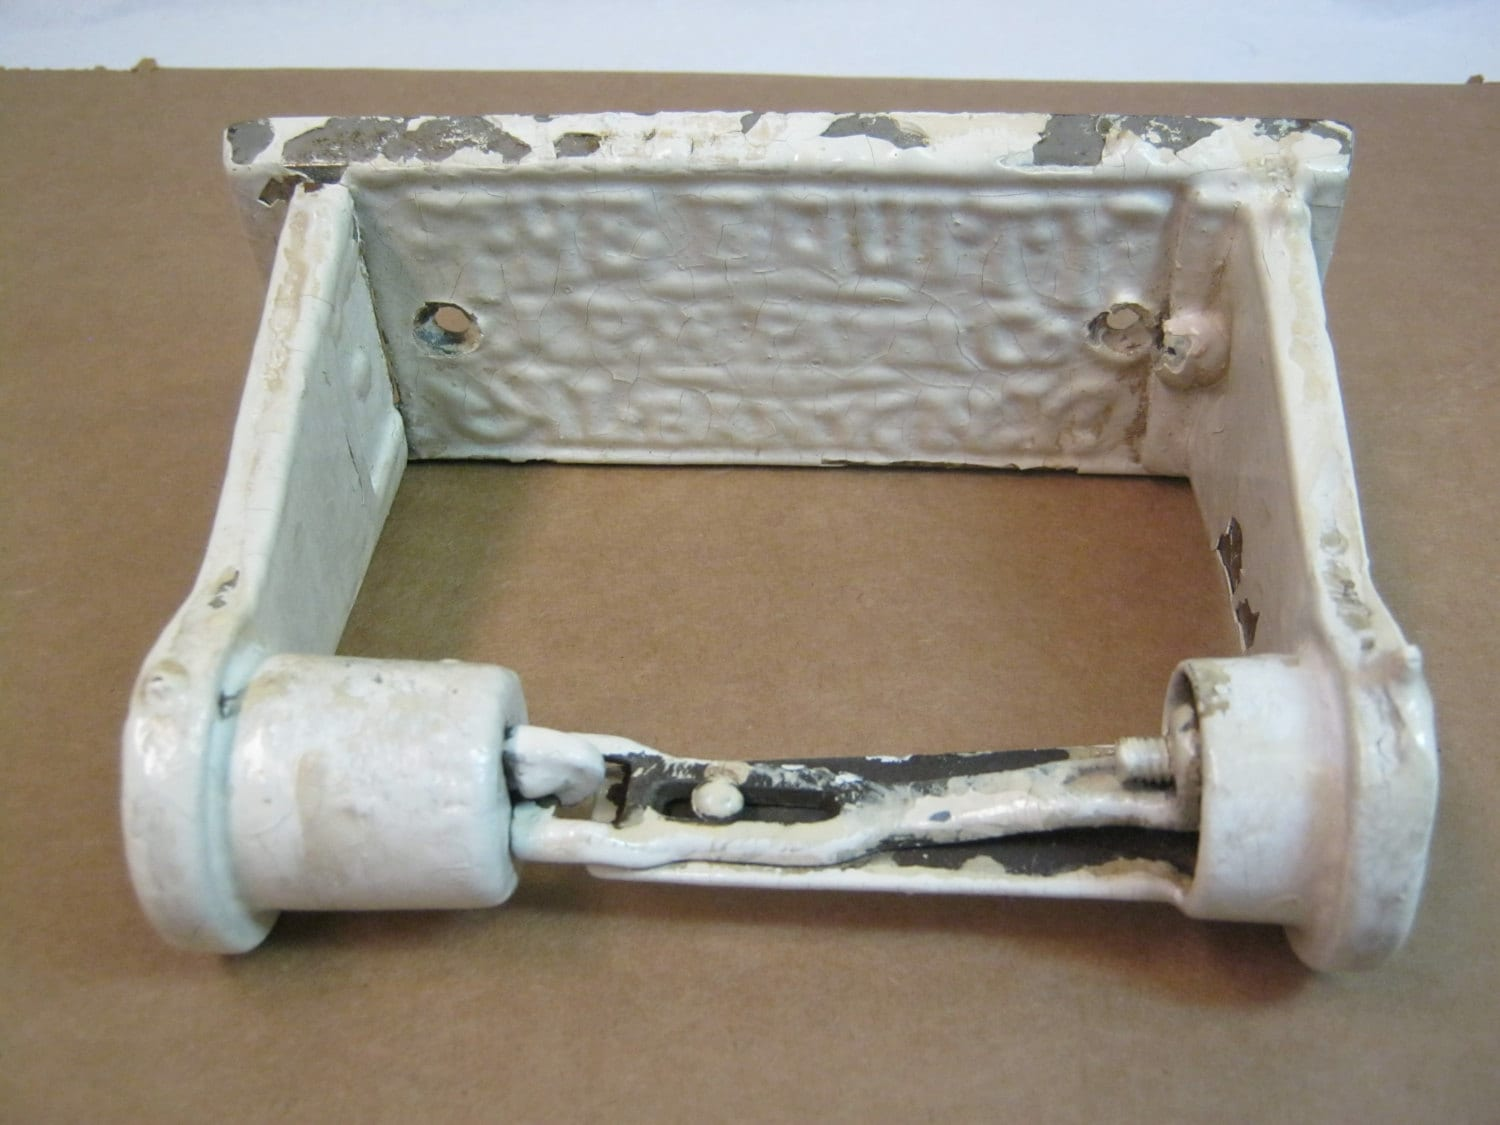 Antique toilet paper holder 39 the equity 39 apw paper co Antique toilet roll holders